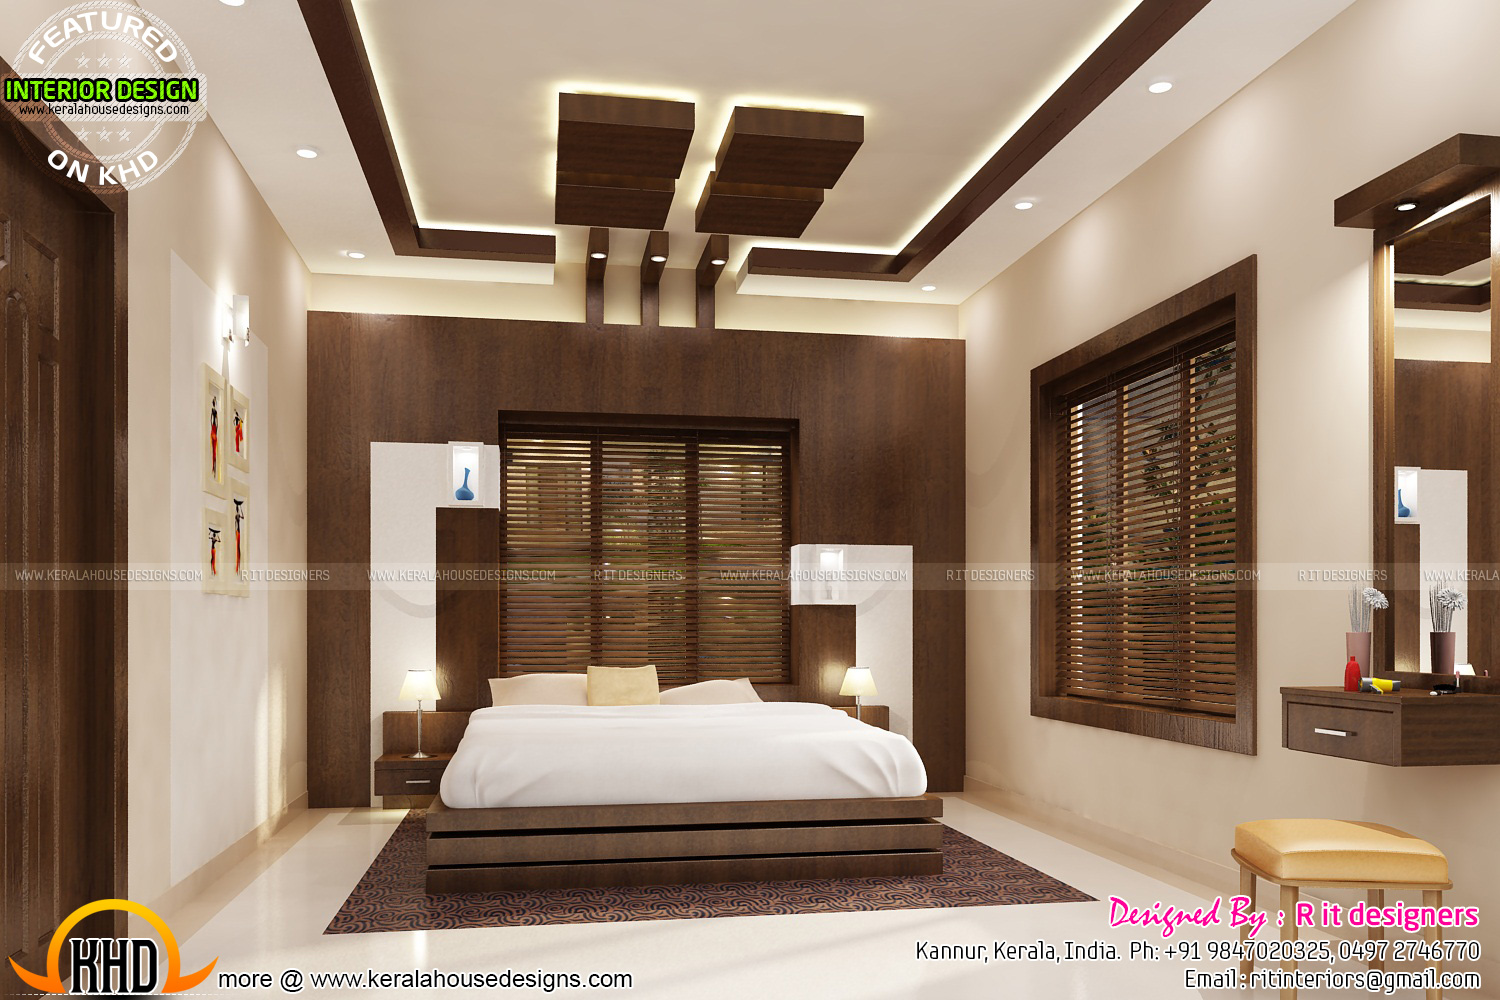 Kerala home design interior bedroom - Kerala House Kitchen Interior